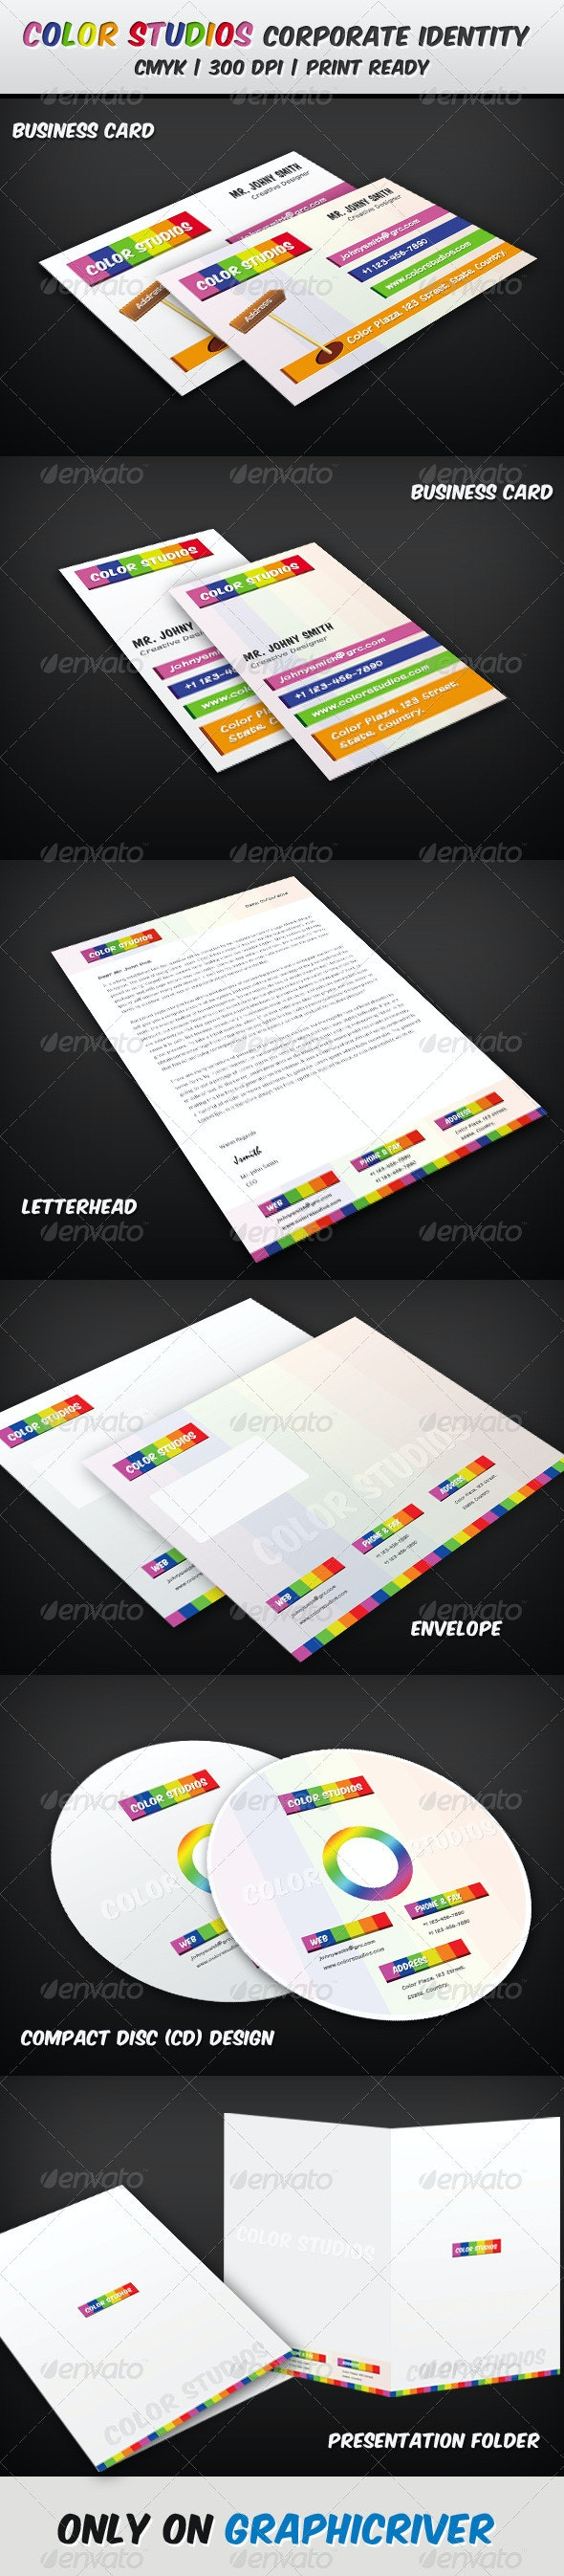 Color Studios Corporate Identity Pack - Stationery Print Templates